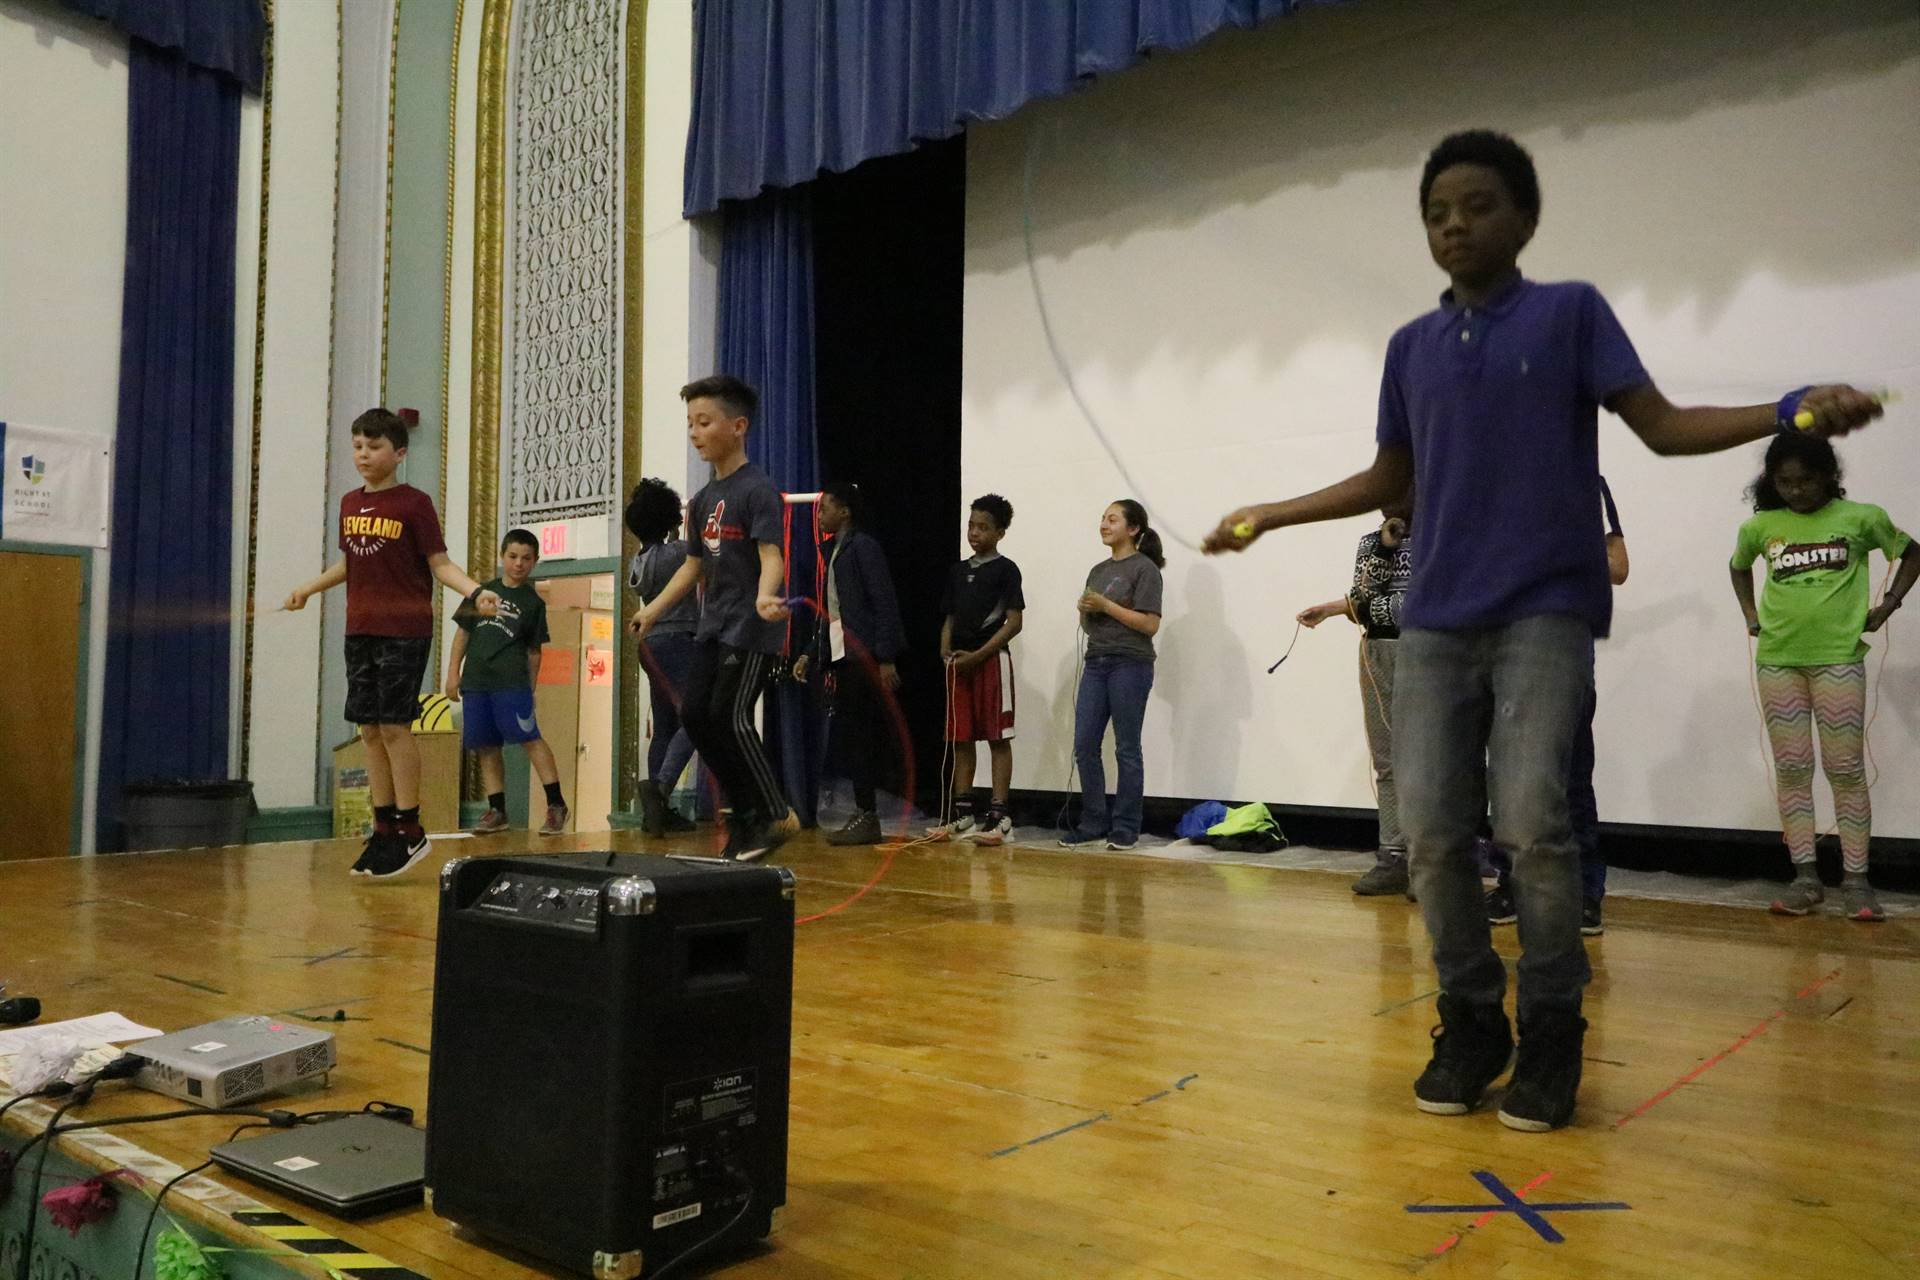 Students on stage jumping rope